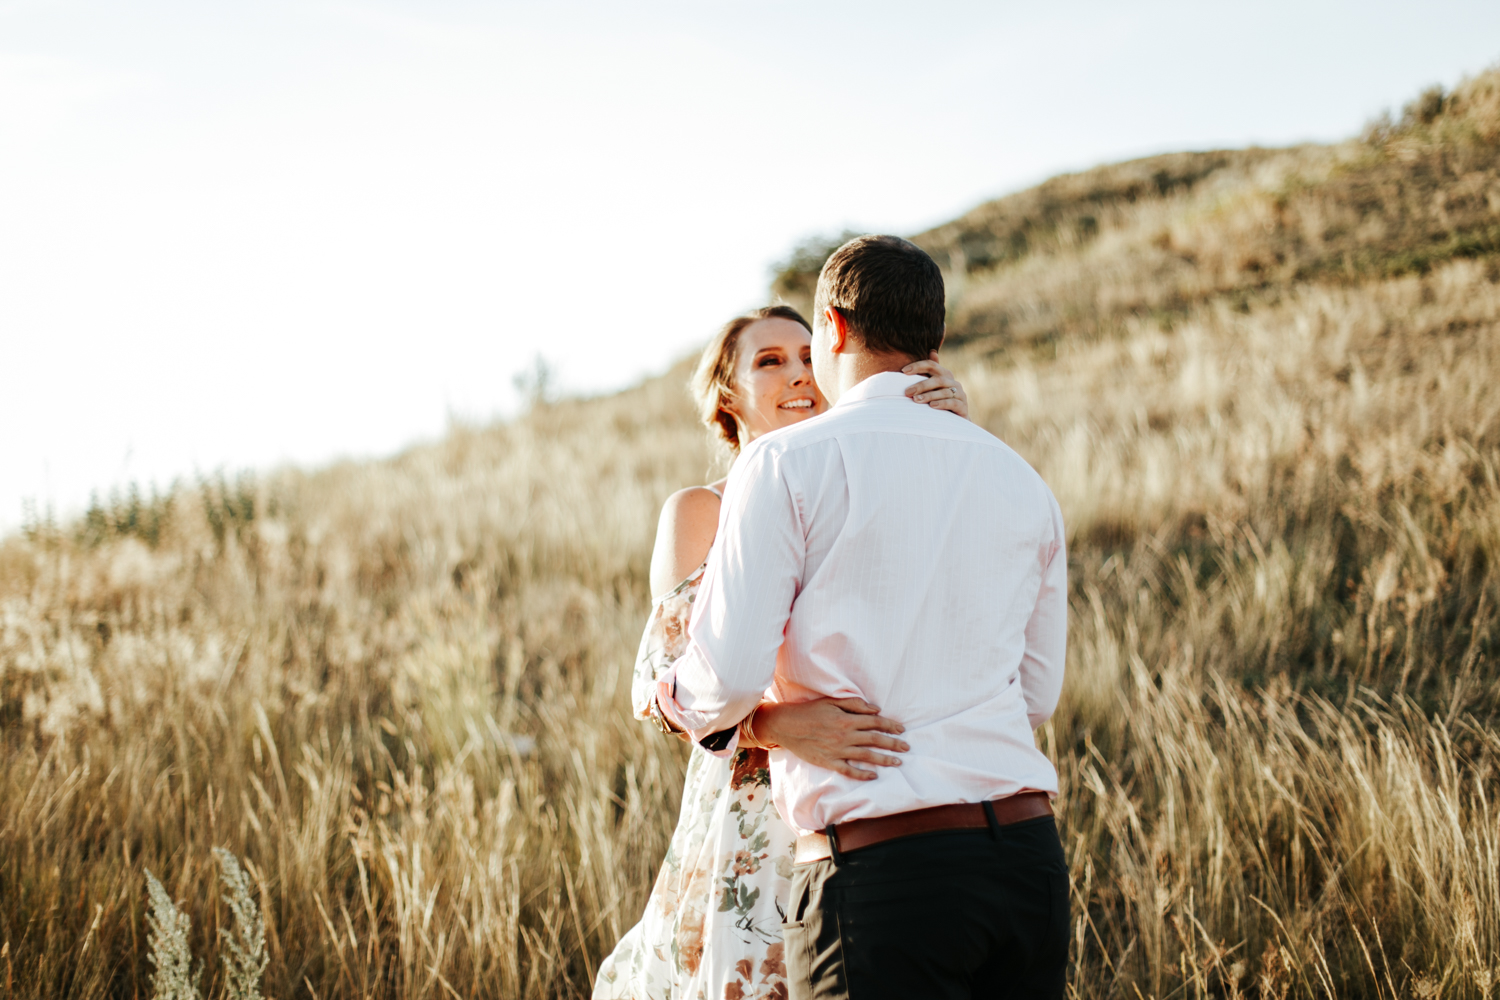 lethbridge-wedding-photographer-love-and-be-loved-photography-katie-kelli-engagement-picture-image-photo-13.jpg